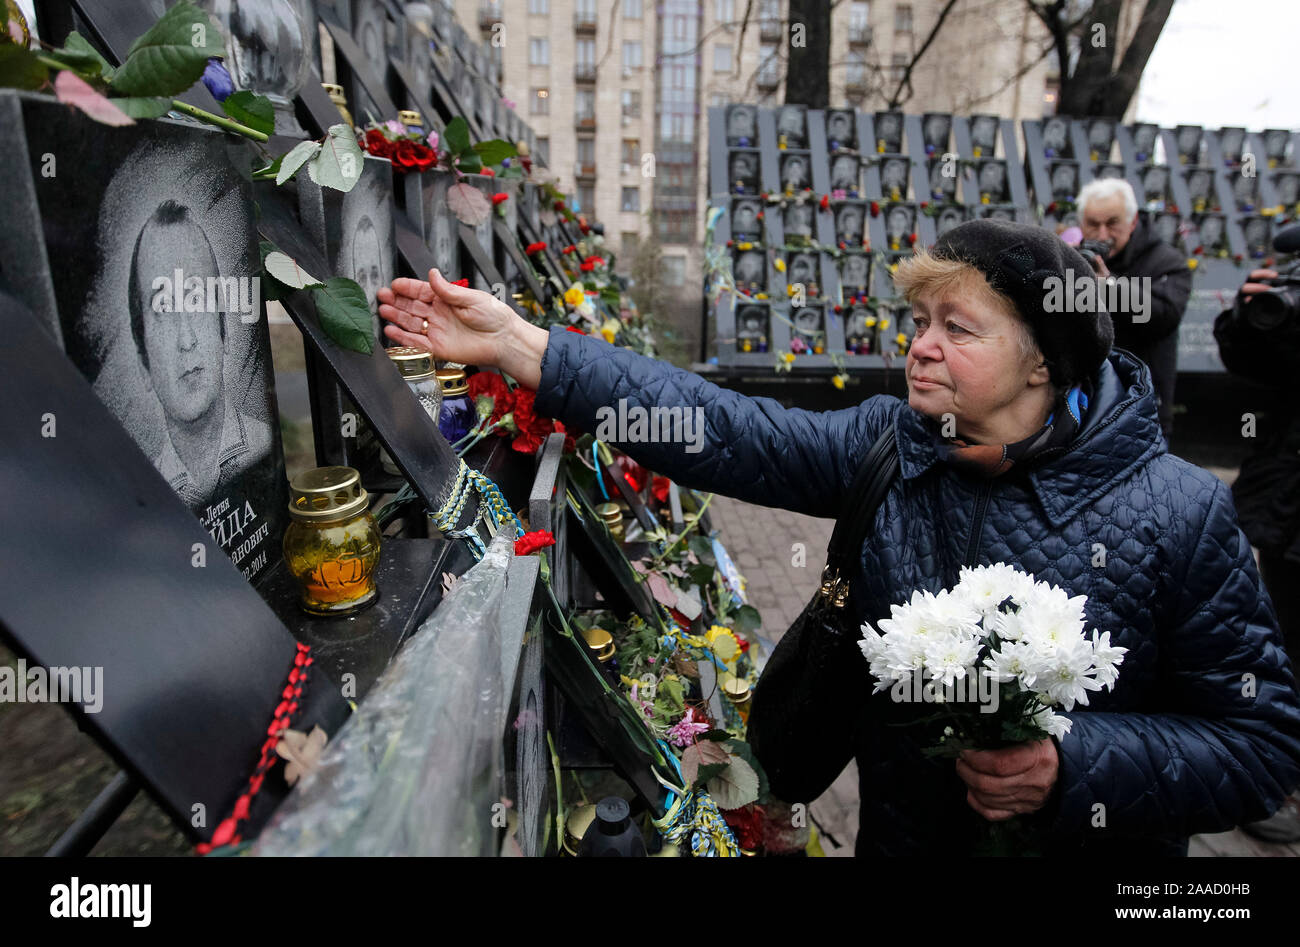 A woman holds flowers at the memorial of dead Maidan activists (Heroes of the Heavenly Hundred) during the anniversary in Kiev.Ukrainians mark the 6th anniversary of the beginning of the Revolution of Dignity or the Euromaidan Revolution in which more than hundred anti-government protesters died. Stock Photo